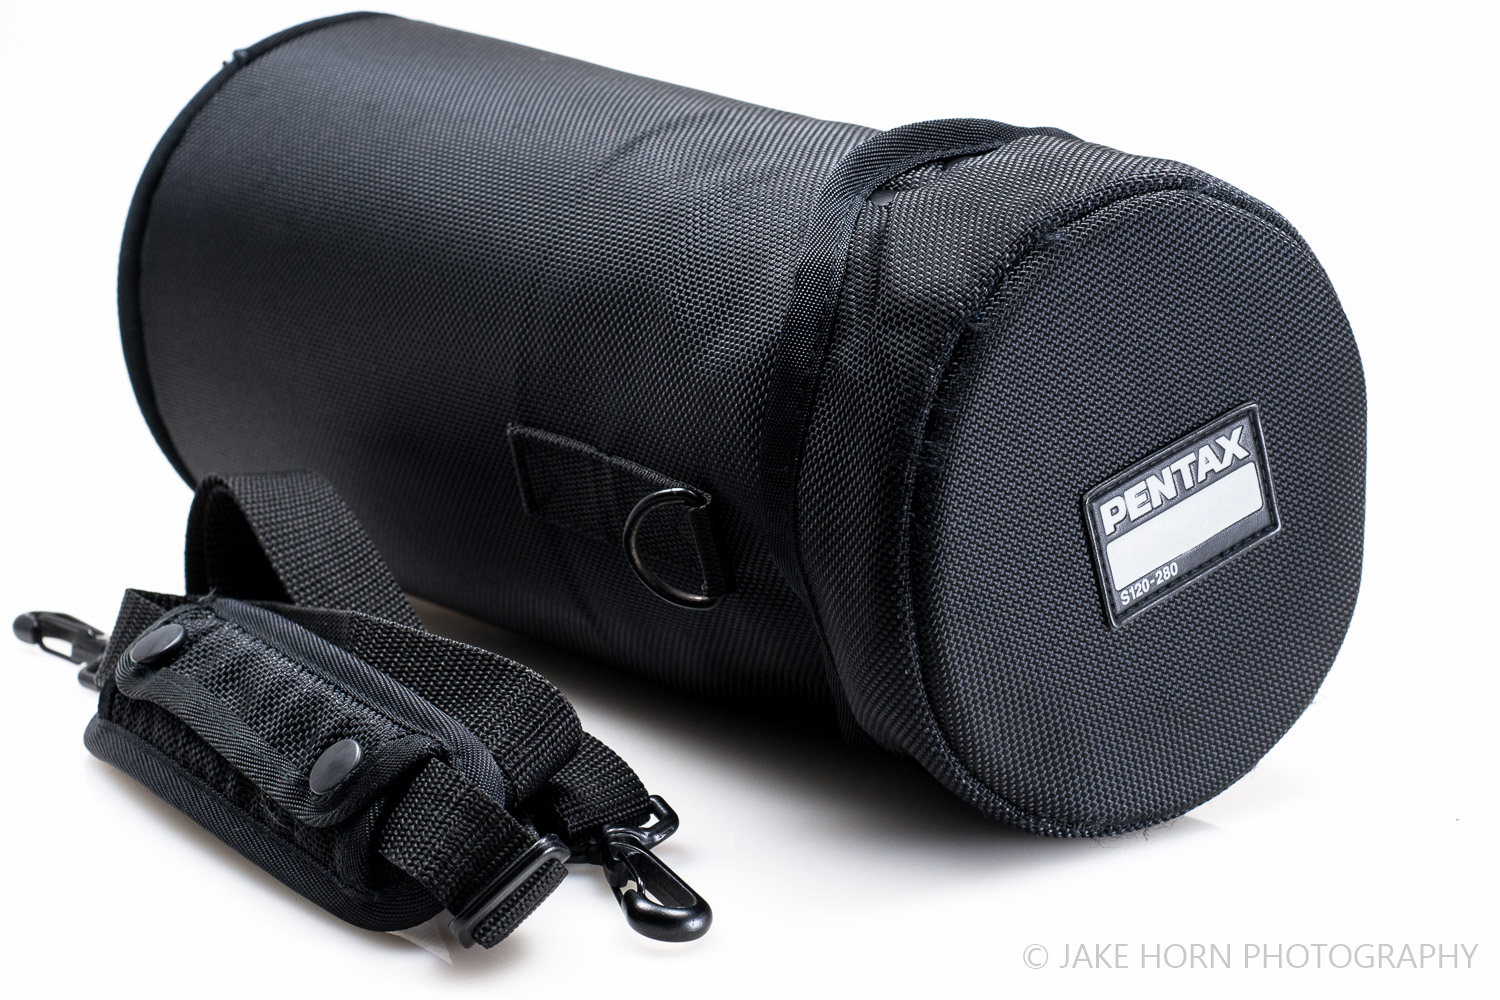 Official Pentax Carrying Case